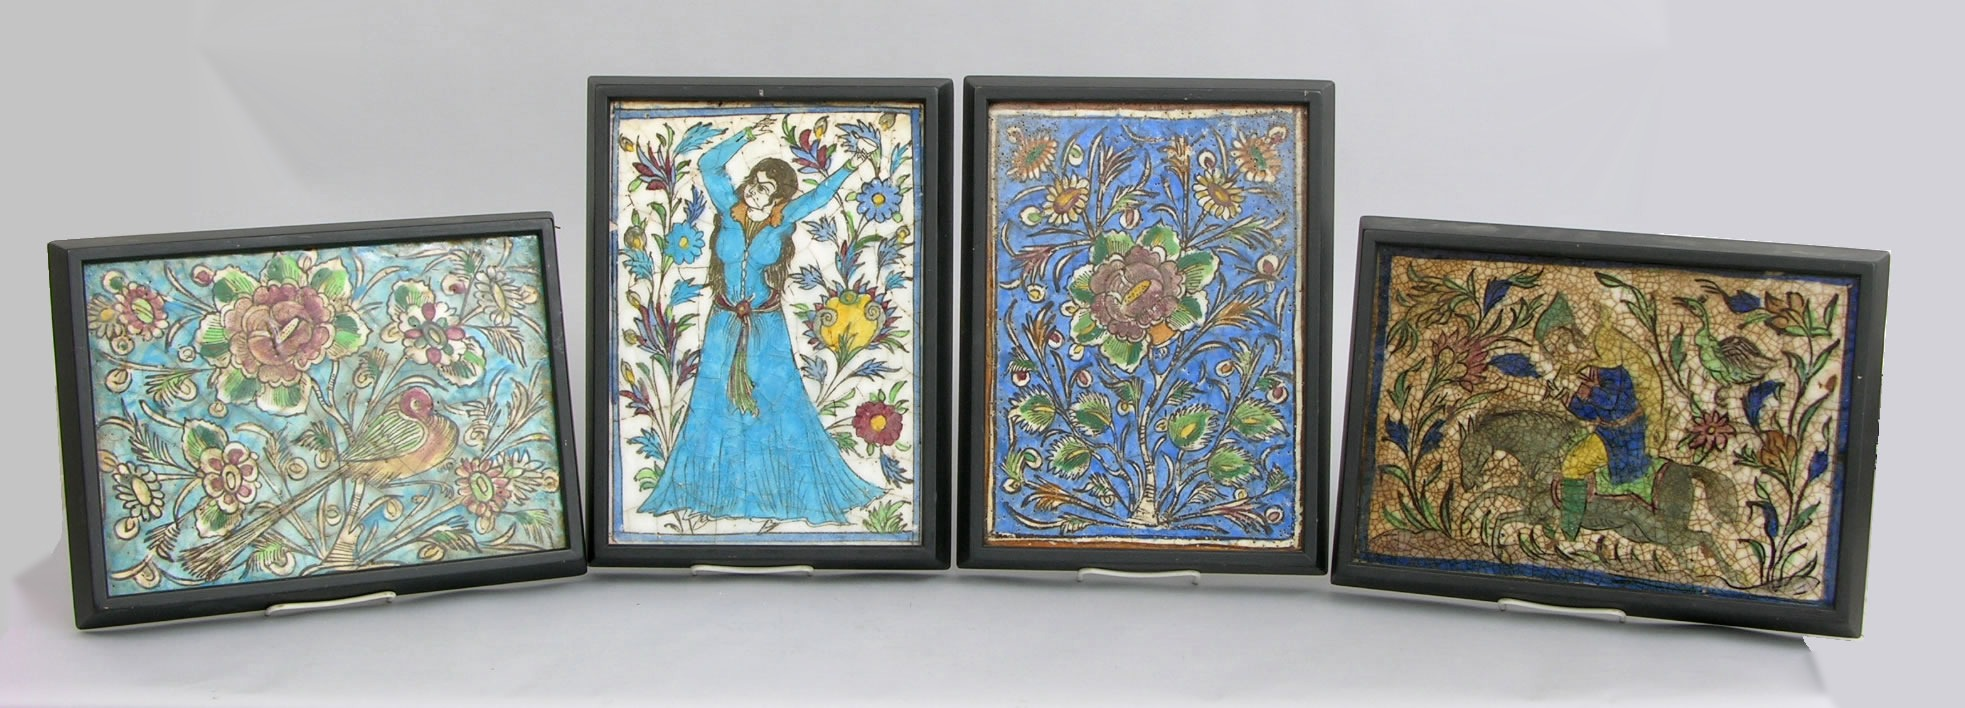 Four antique persian hand painted framed ceramic tiles 030709 four antique persian hand painted framed ceramic tiles dailygadgetfo Image collections